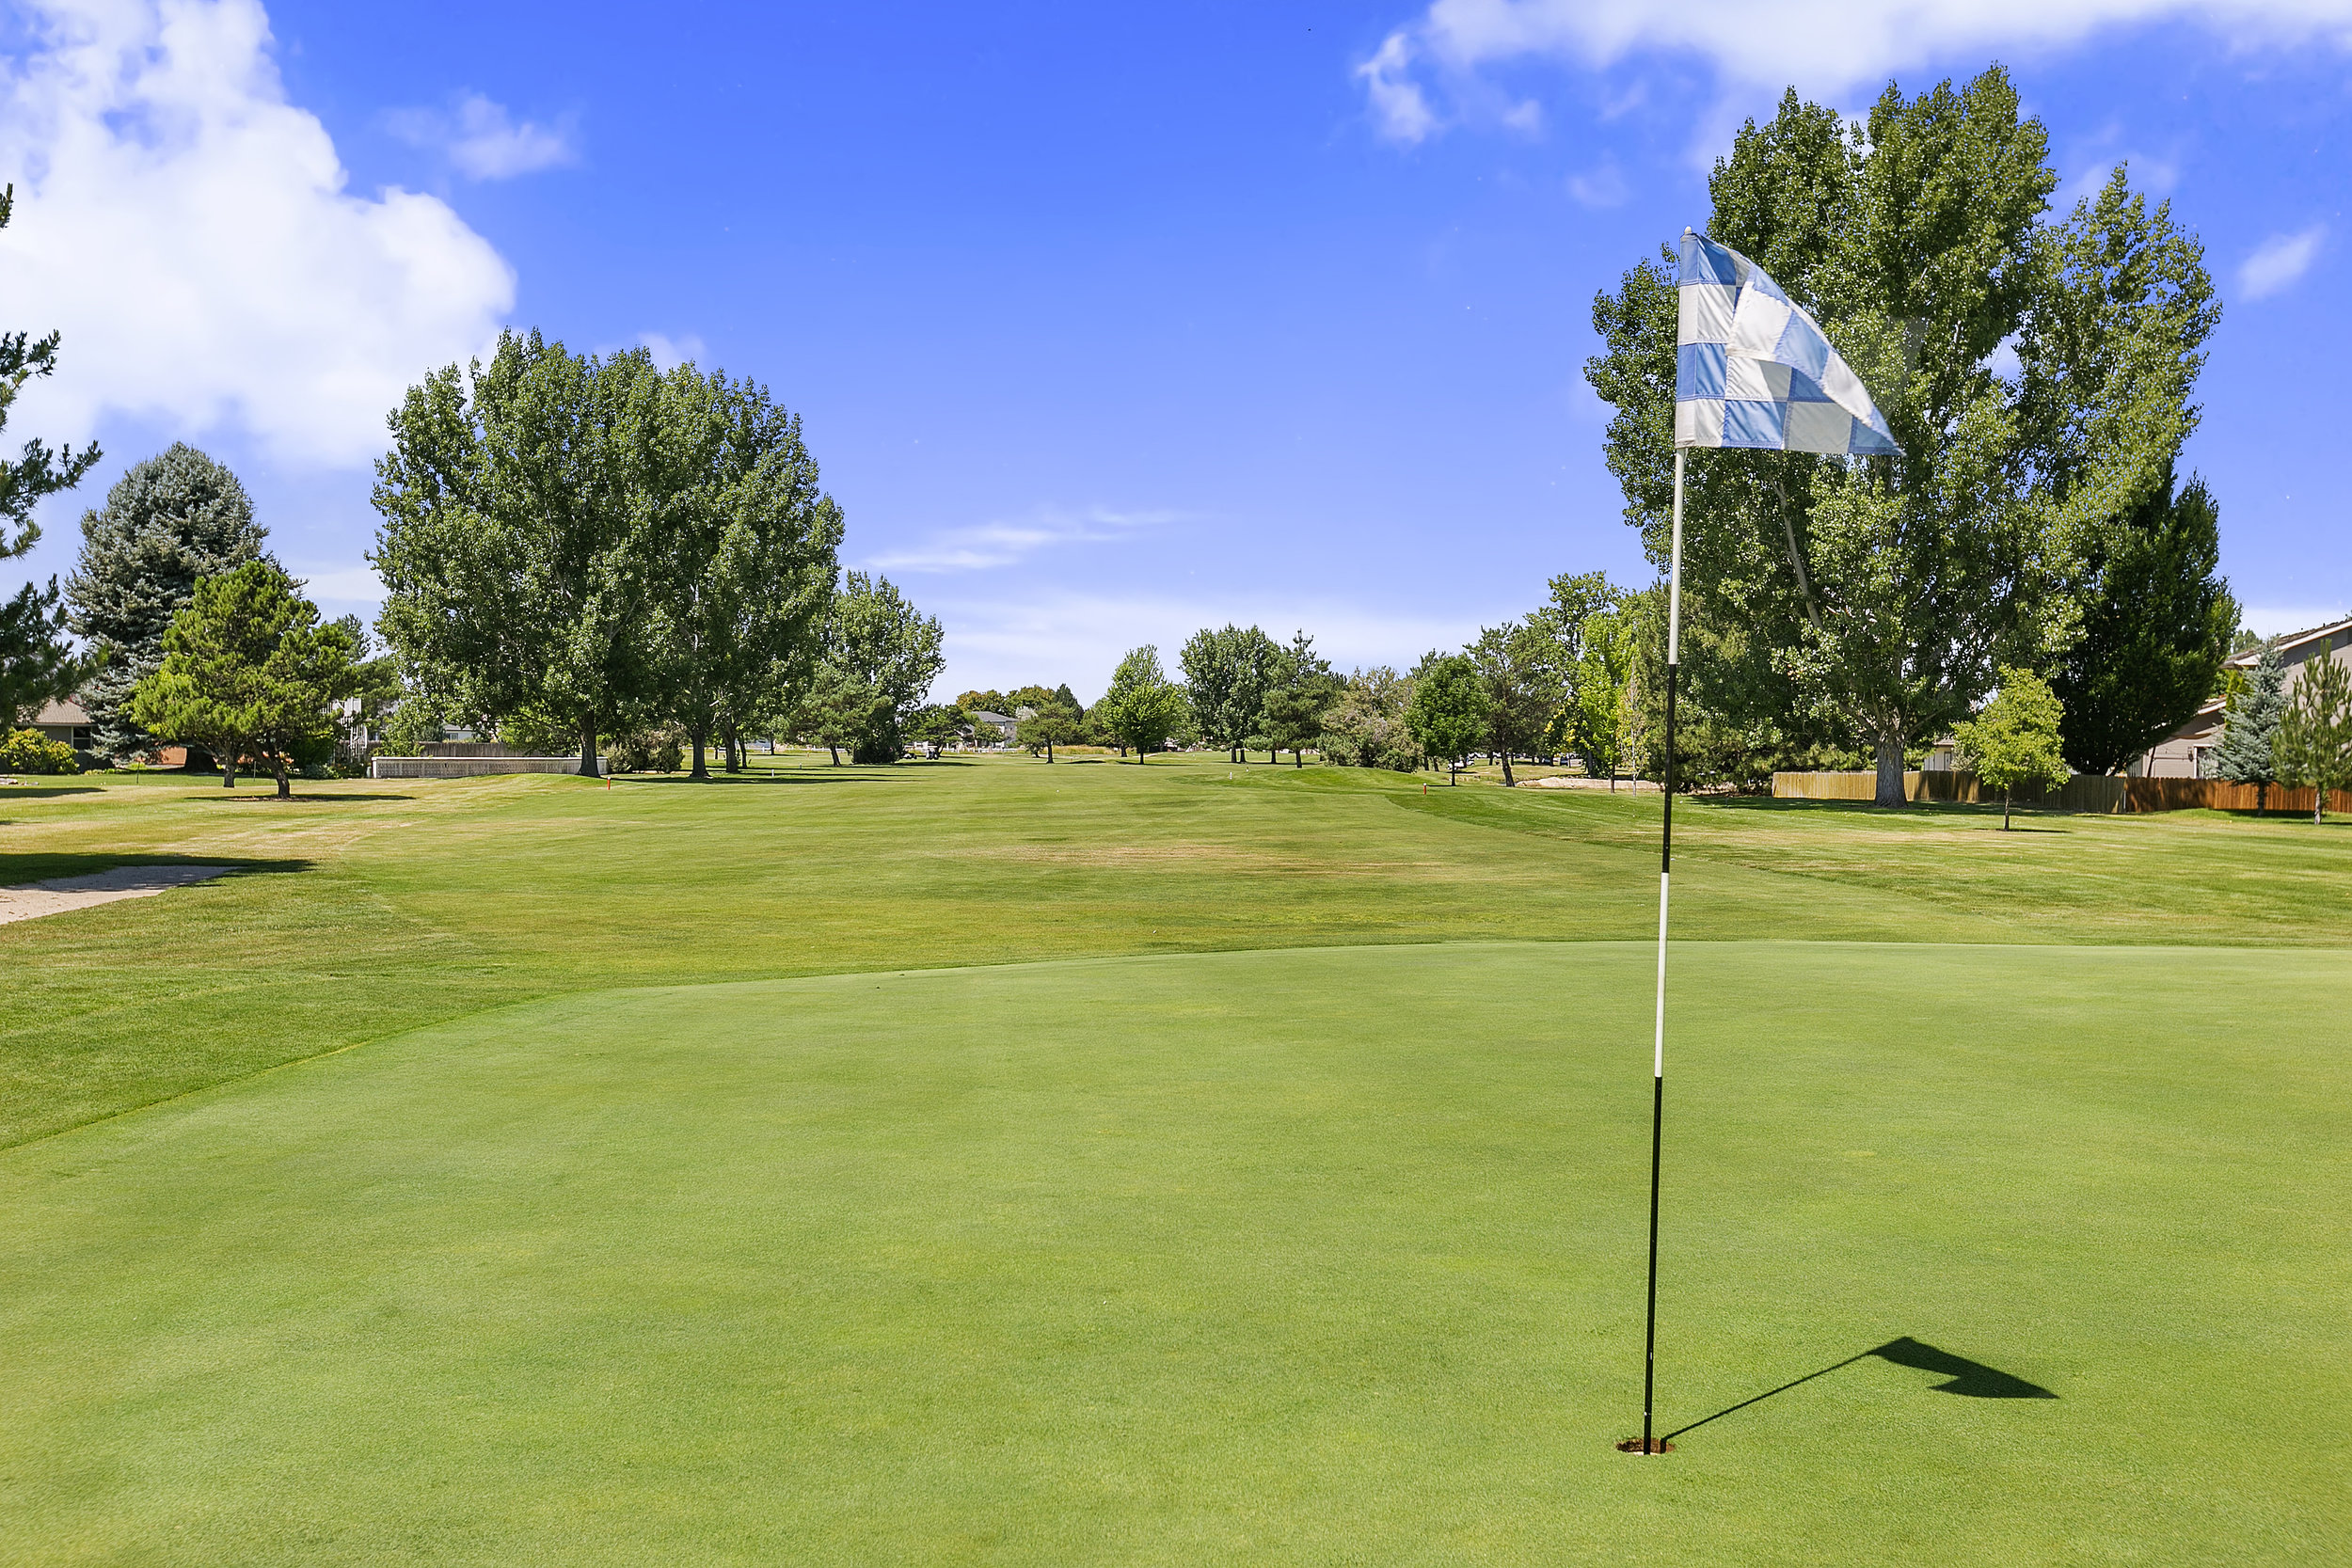 045-Lakeview Golfcourse (8).jpg